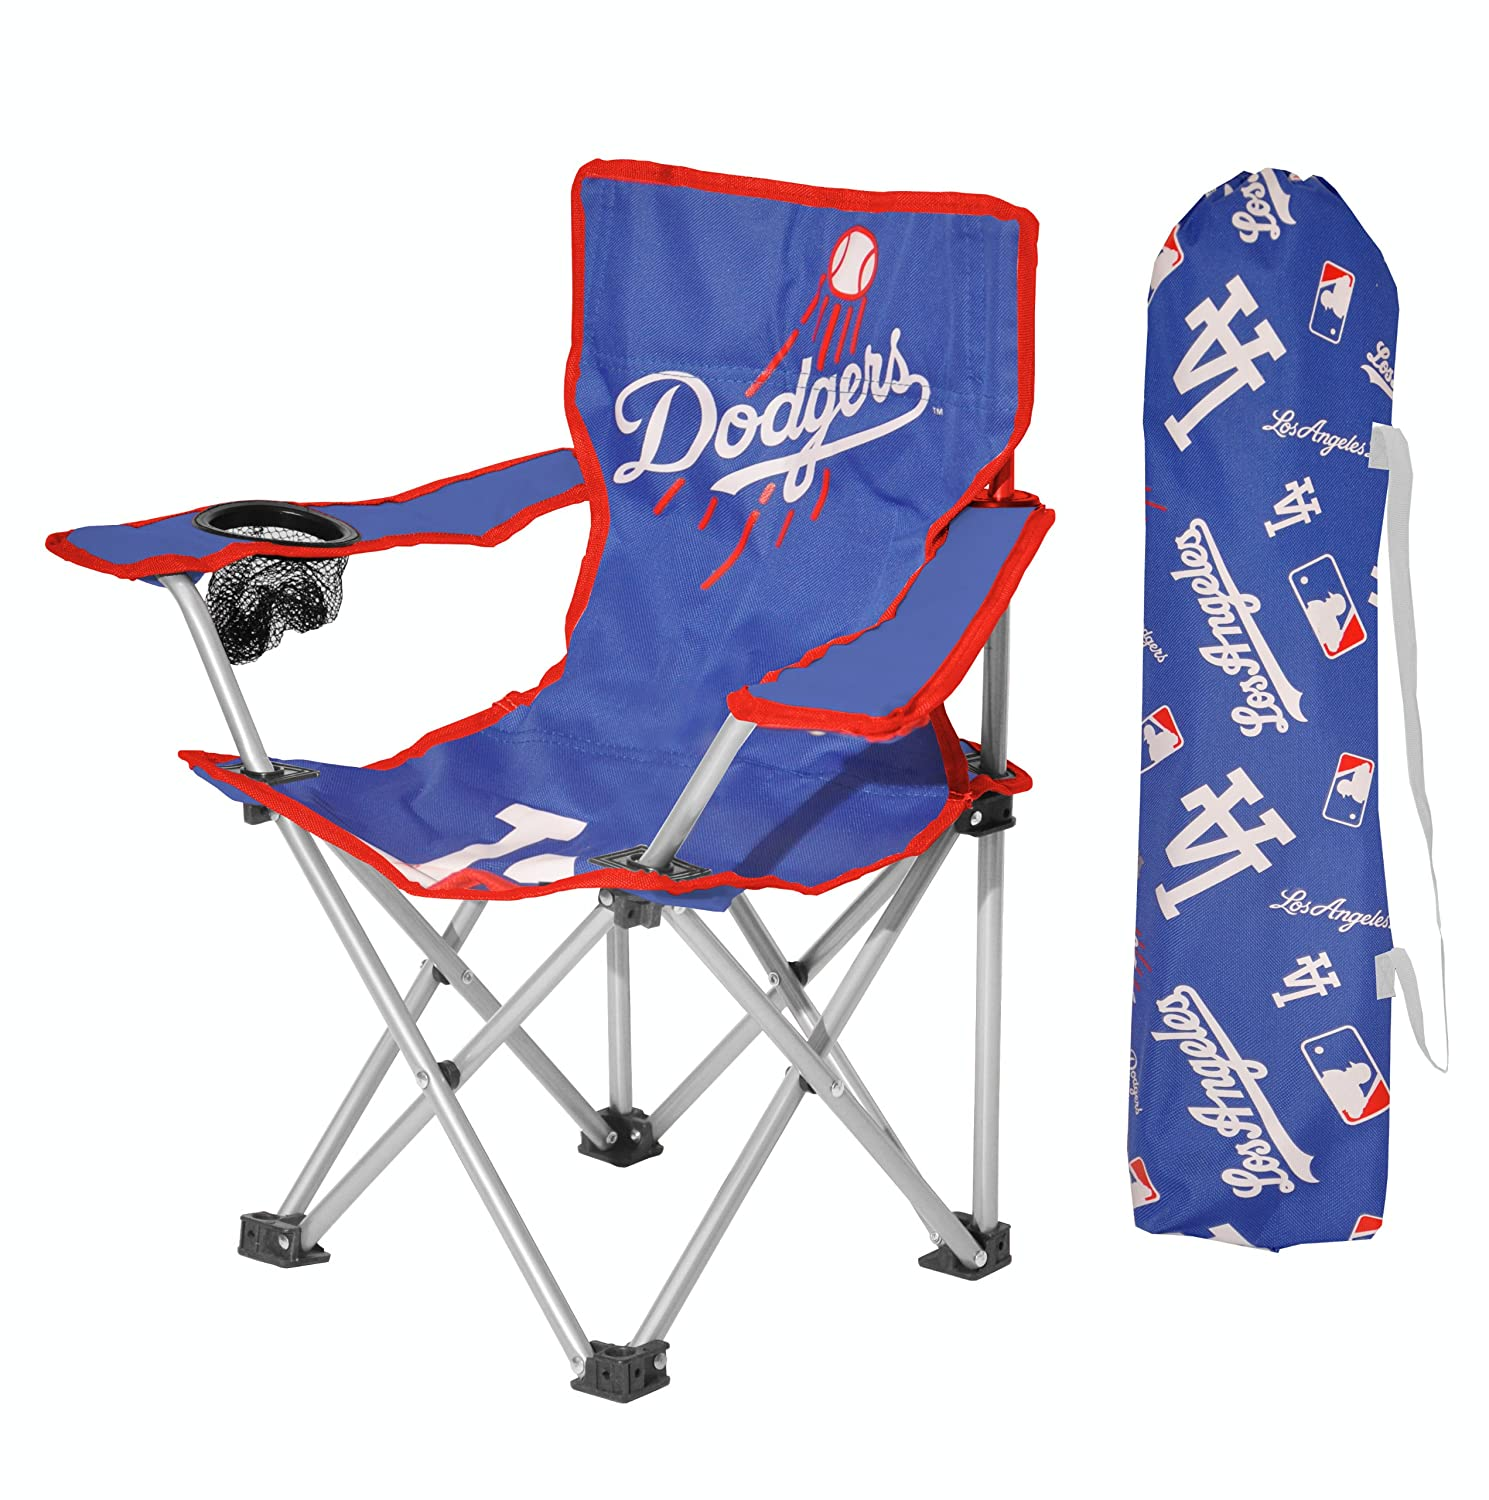 Kids Camping Chair With Carrying Bag